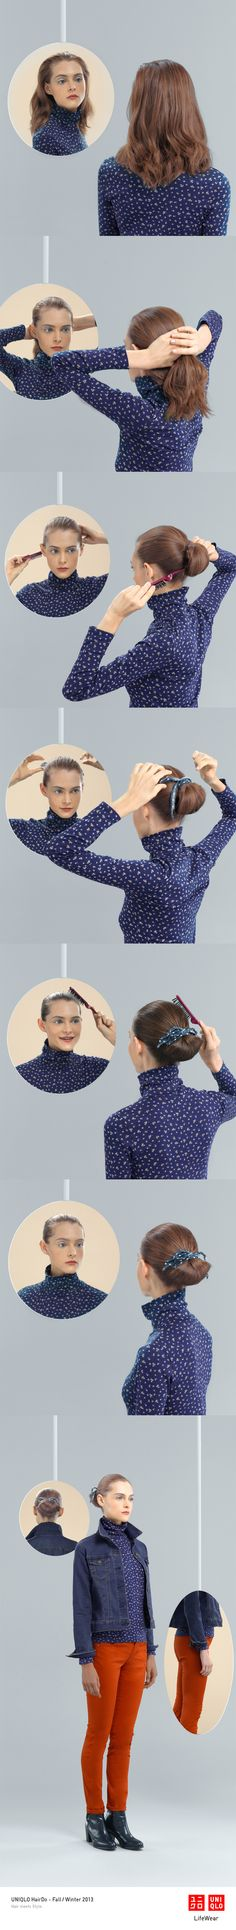 """THE CHIGNON"" : Our denim jacket and ultra stretch jeans make this look complete. Click the image for DIY instructions! #Chignon #Hair #Hairstyle #DIY #UNIQLO"